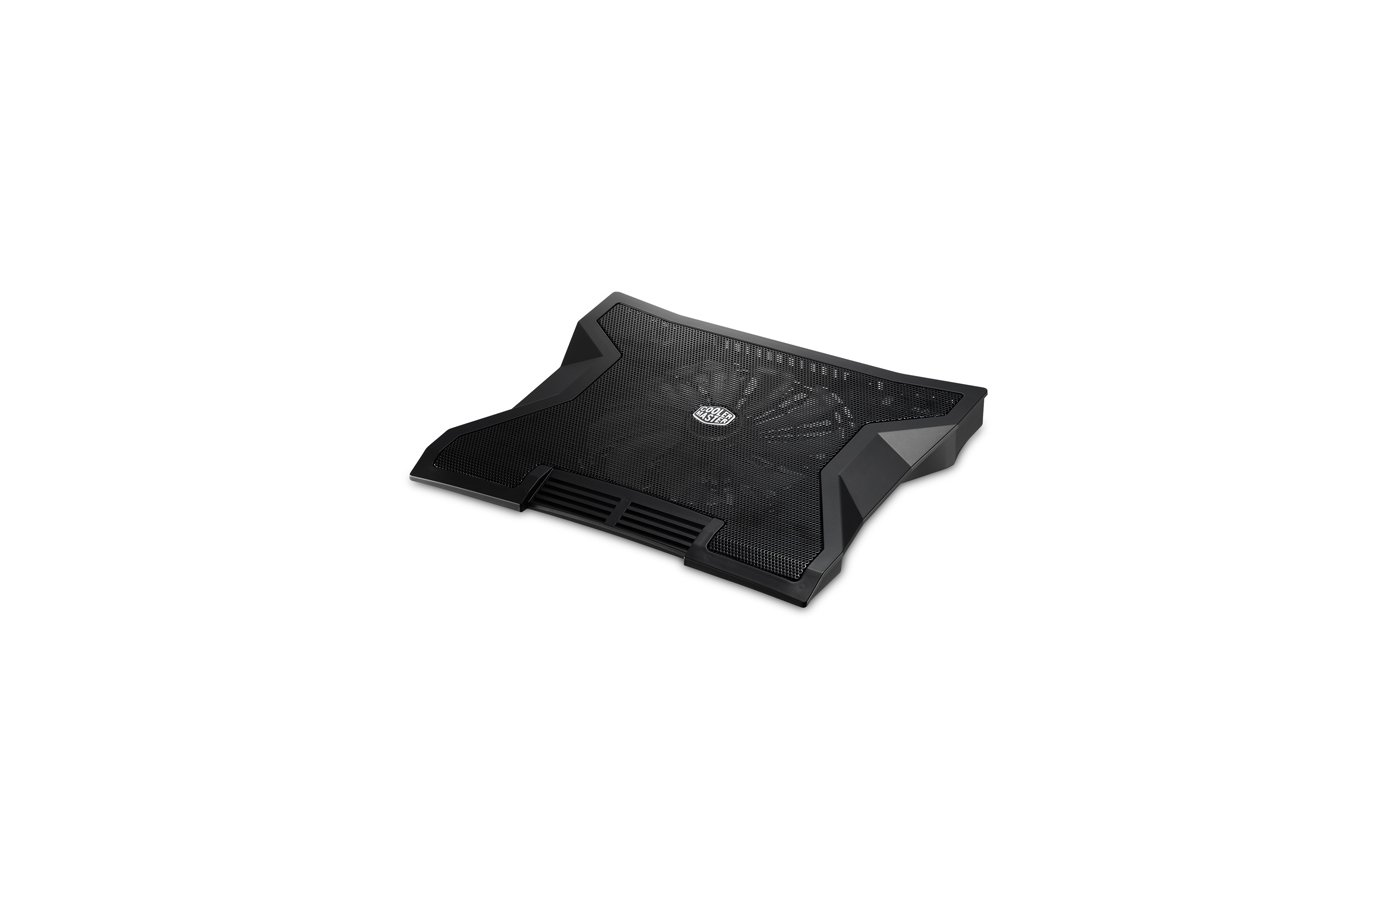 Подставка для ноутбука Cooler Master Laptop Cooling NotePal XL Black (R9-NBC-NXLK-GP)